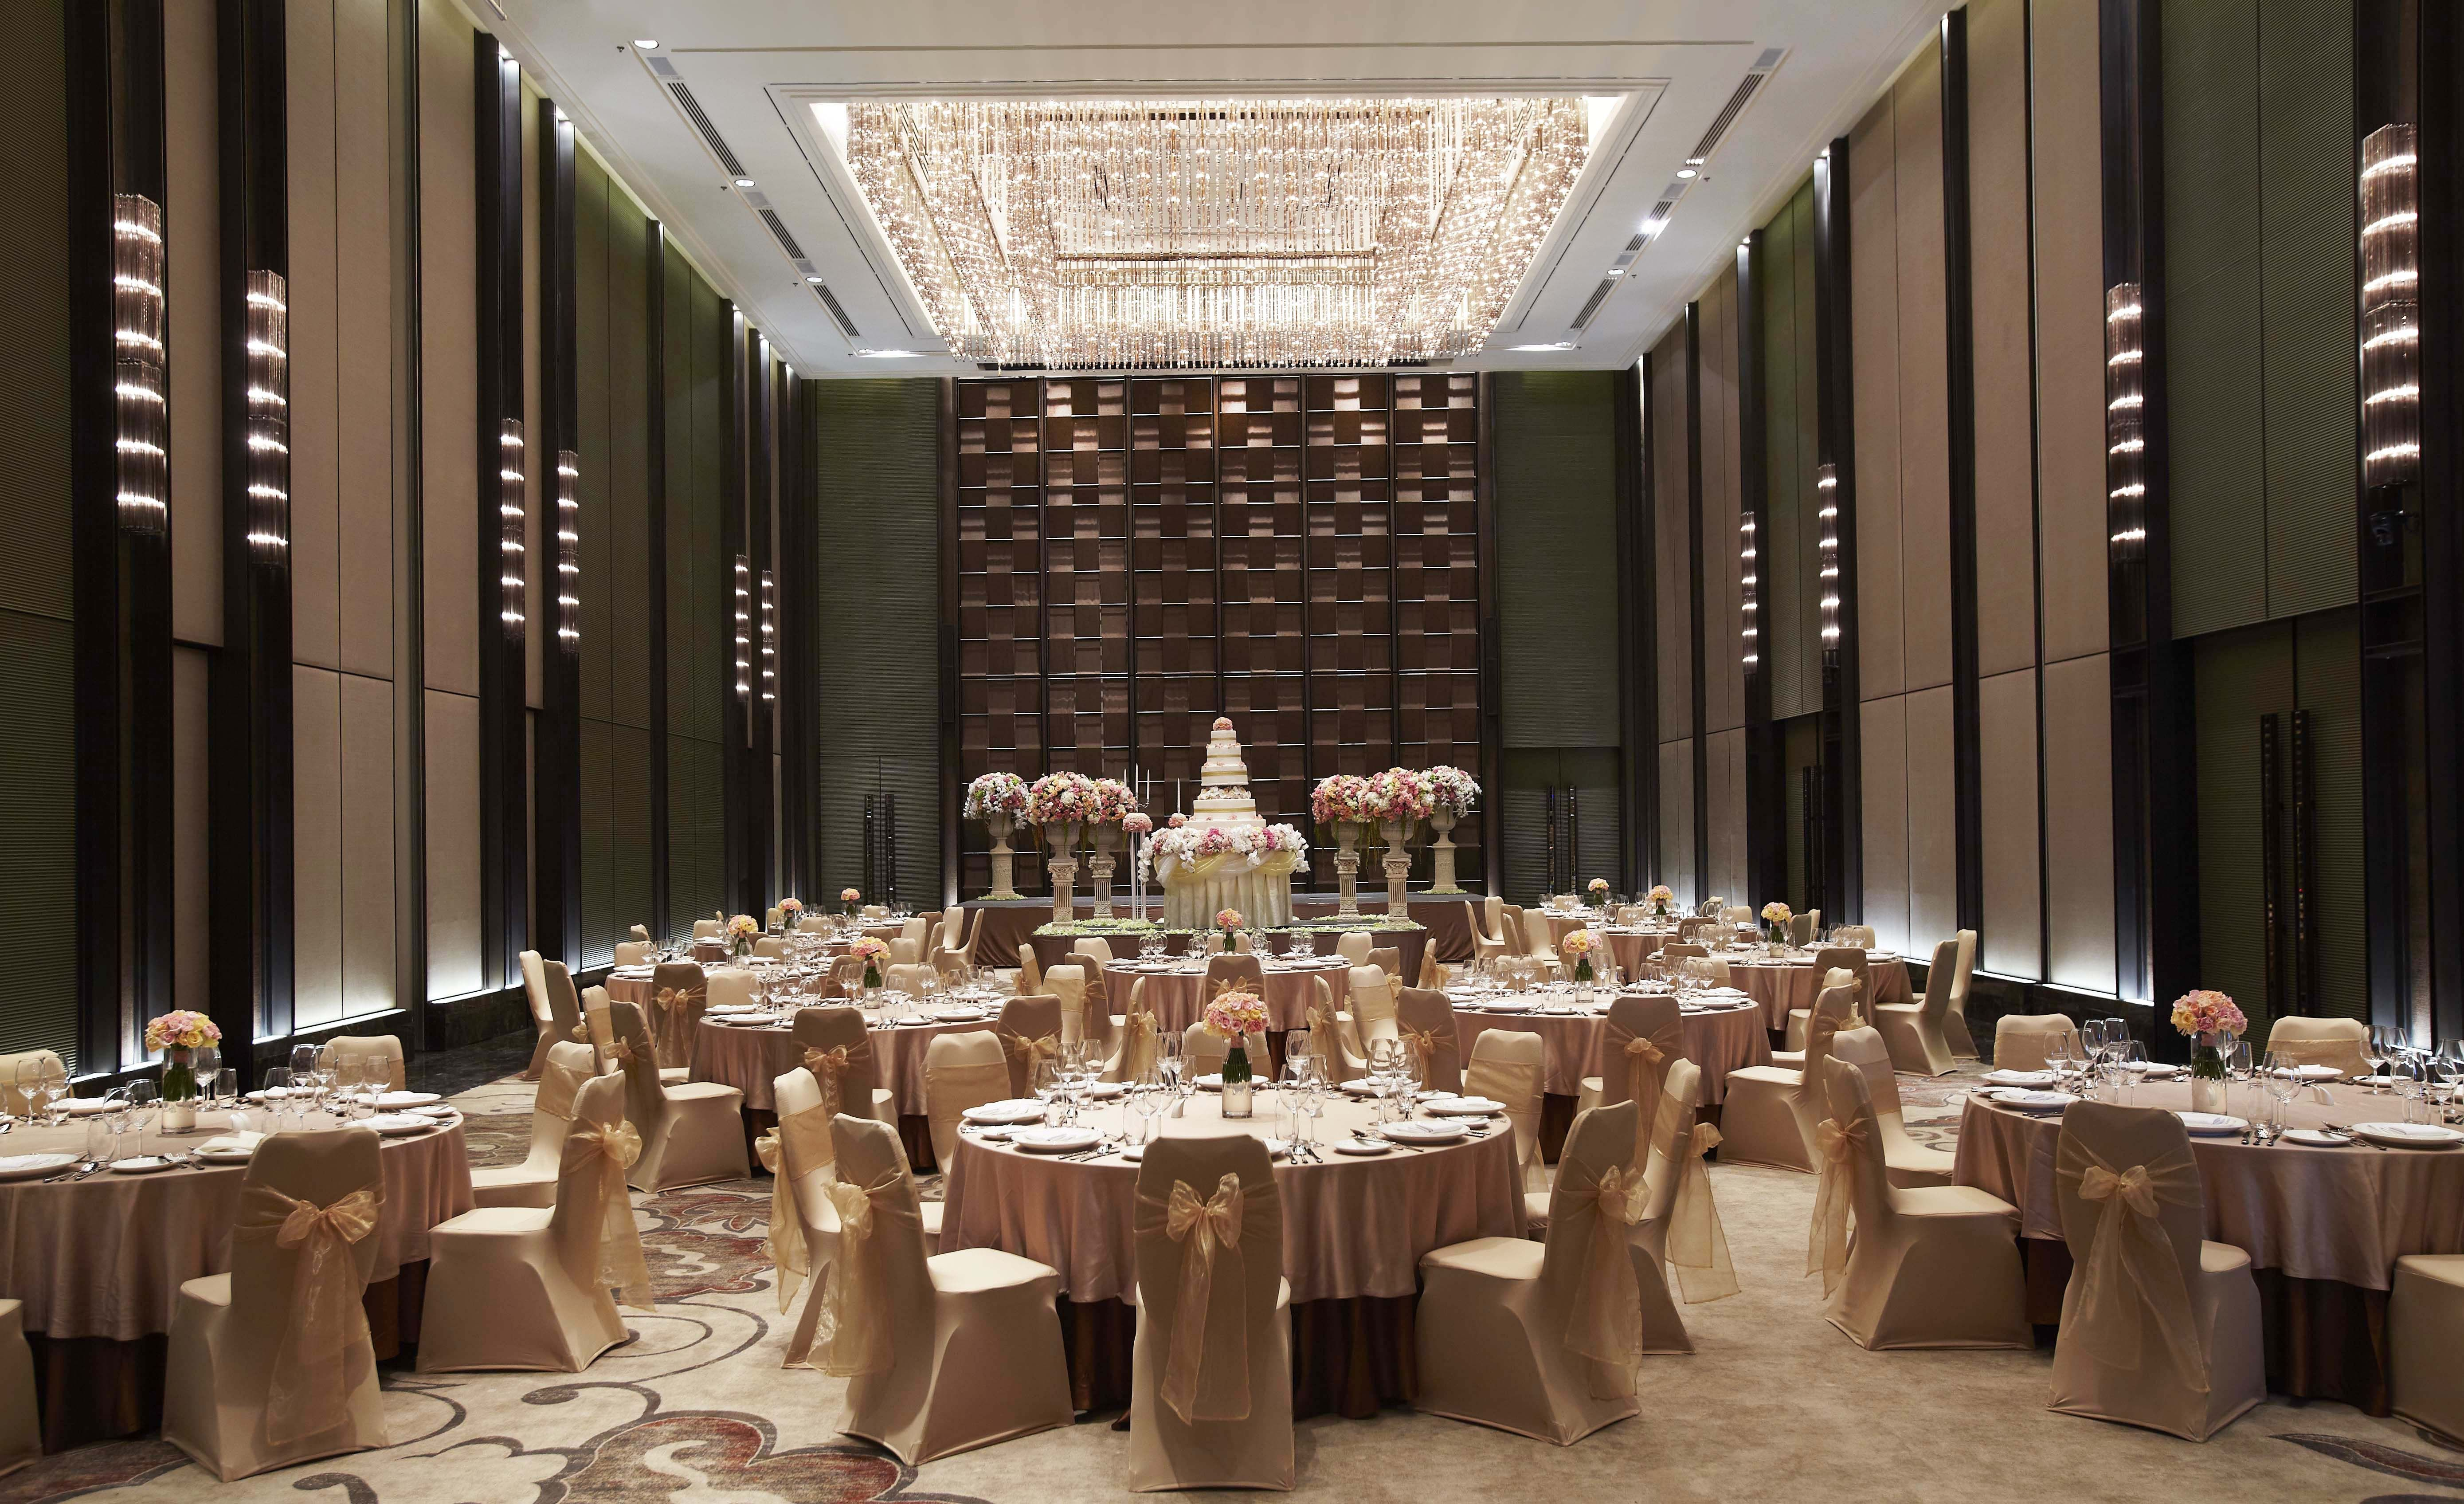 Luxury Hotel Bangkok The Okura Prestige Bangkok Ballroom Design Hall Interior Hotel Interior Design